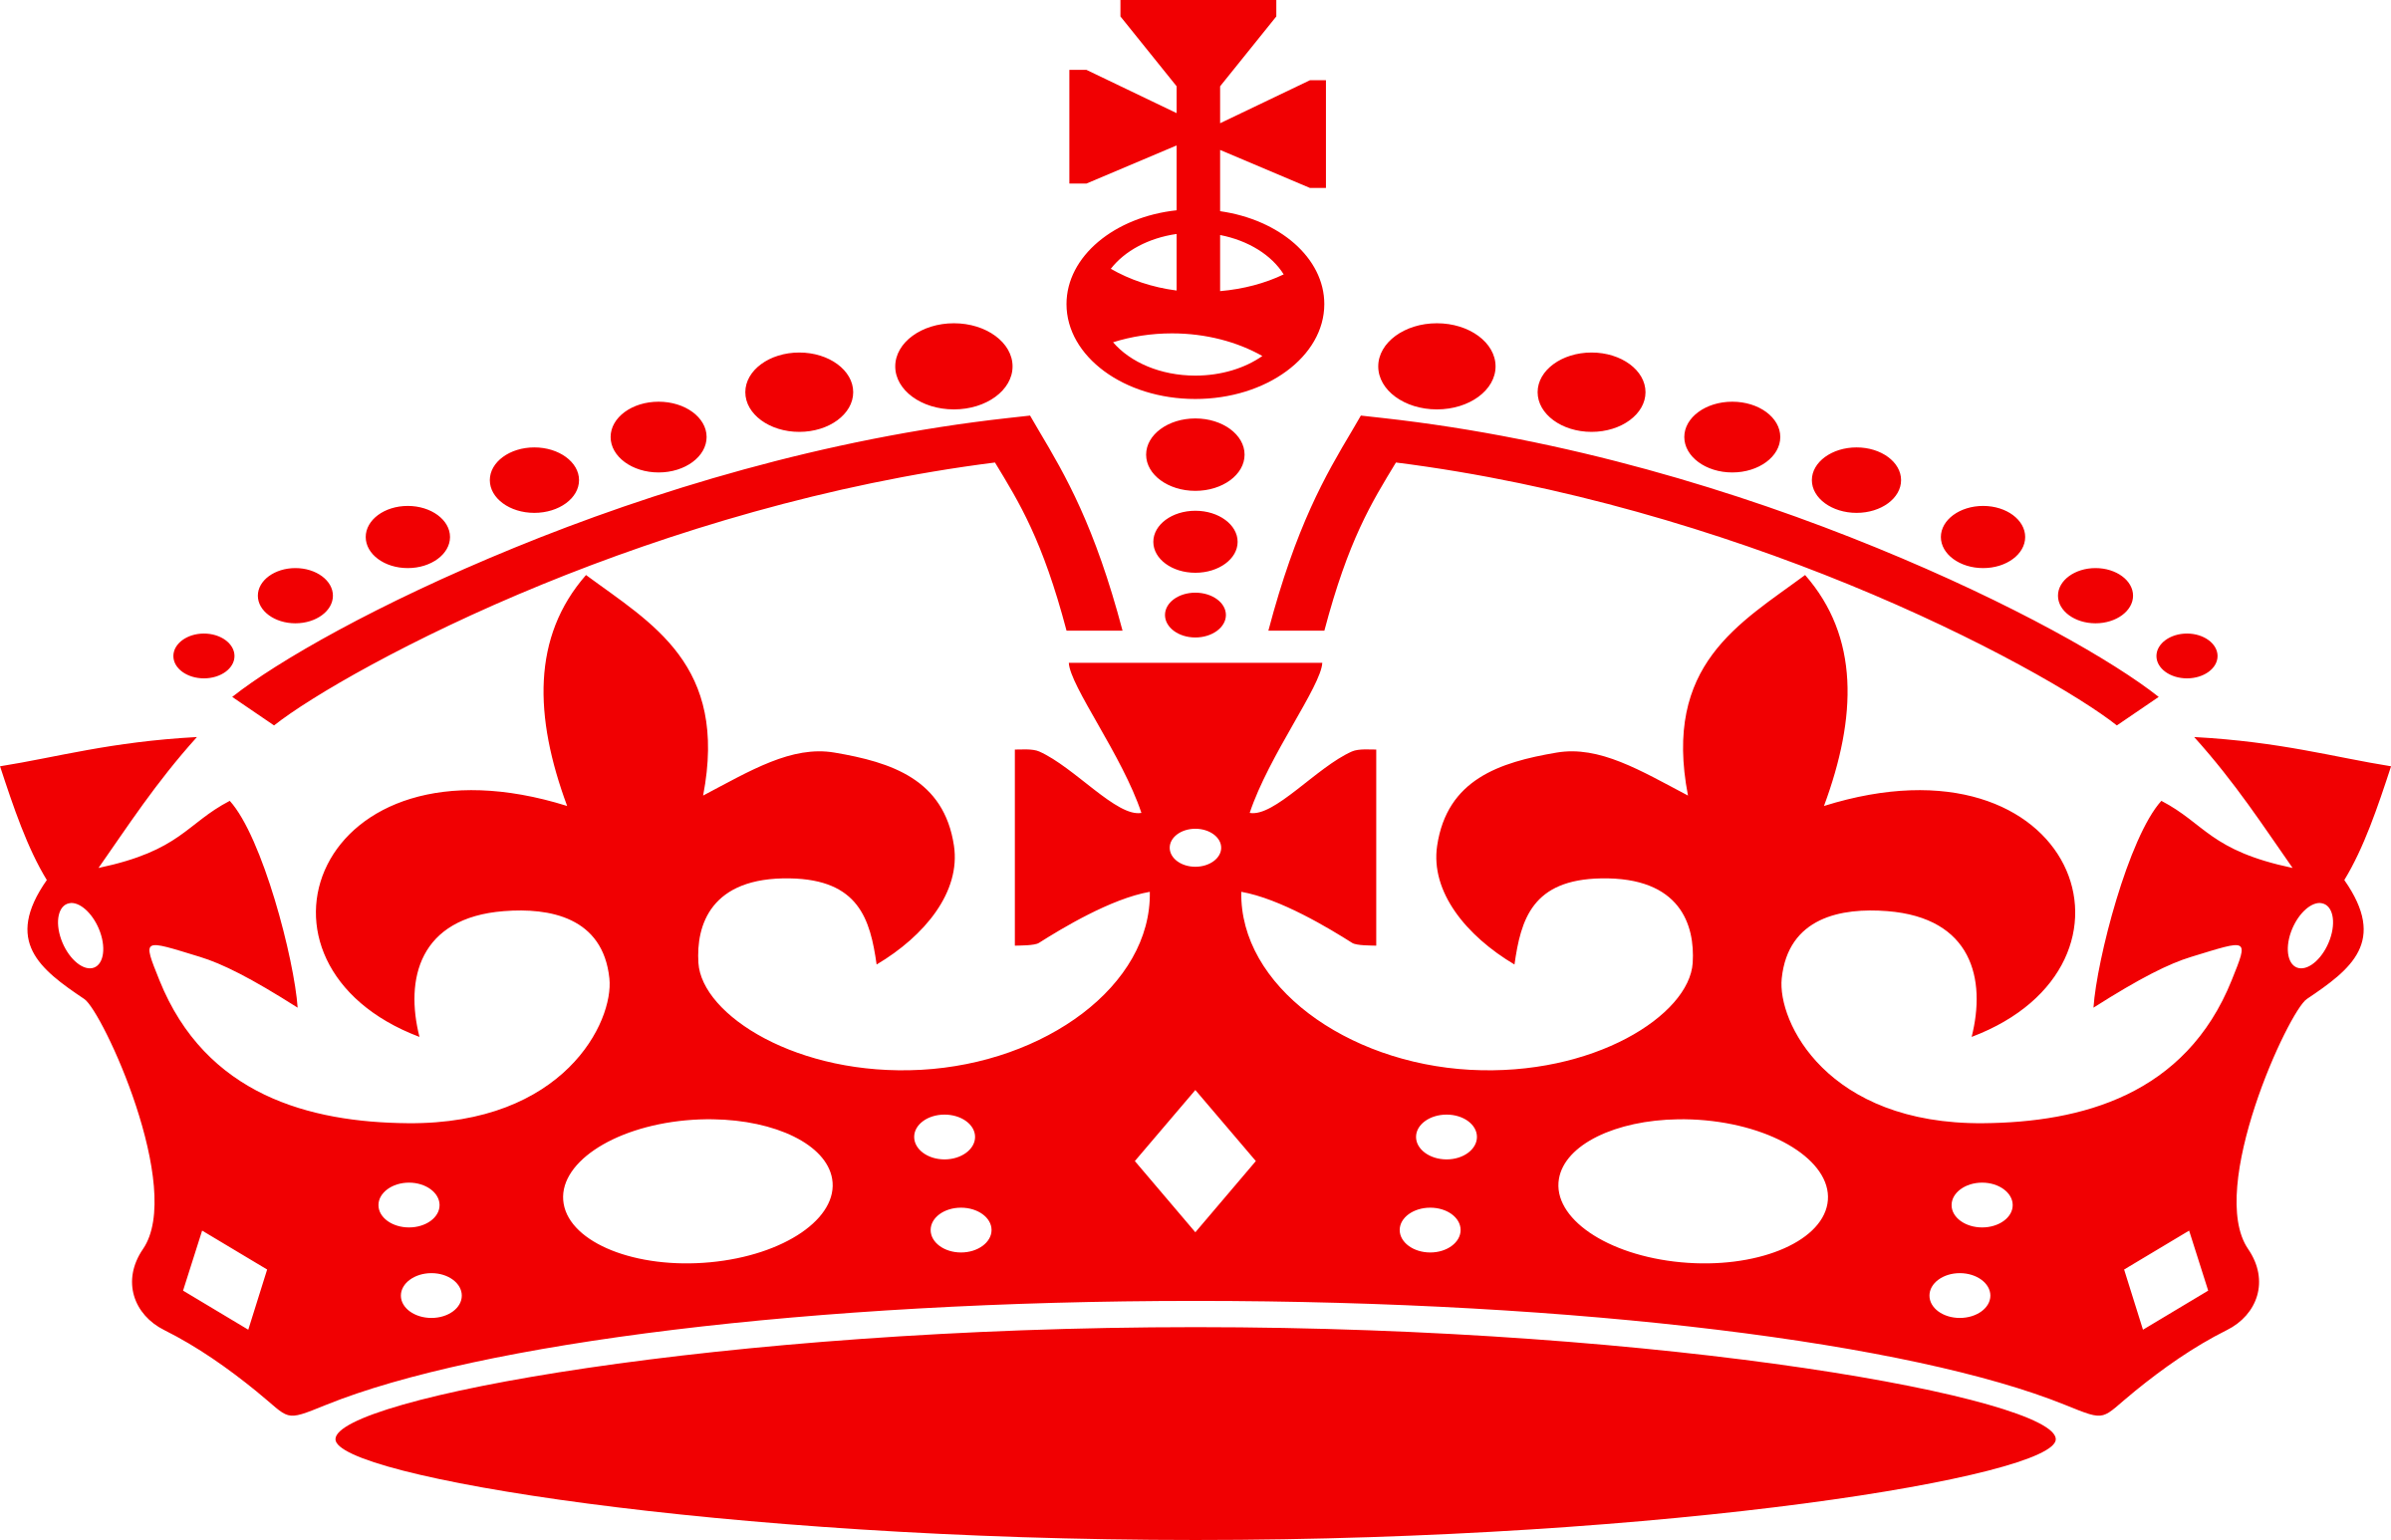 Red crown png. Jubilee icons free and